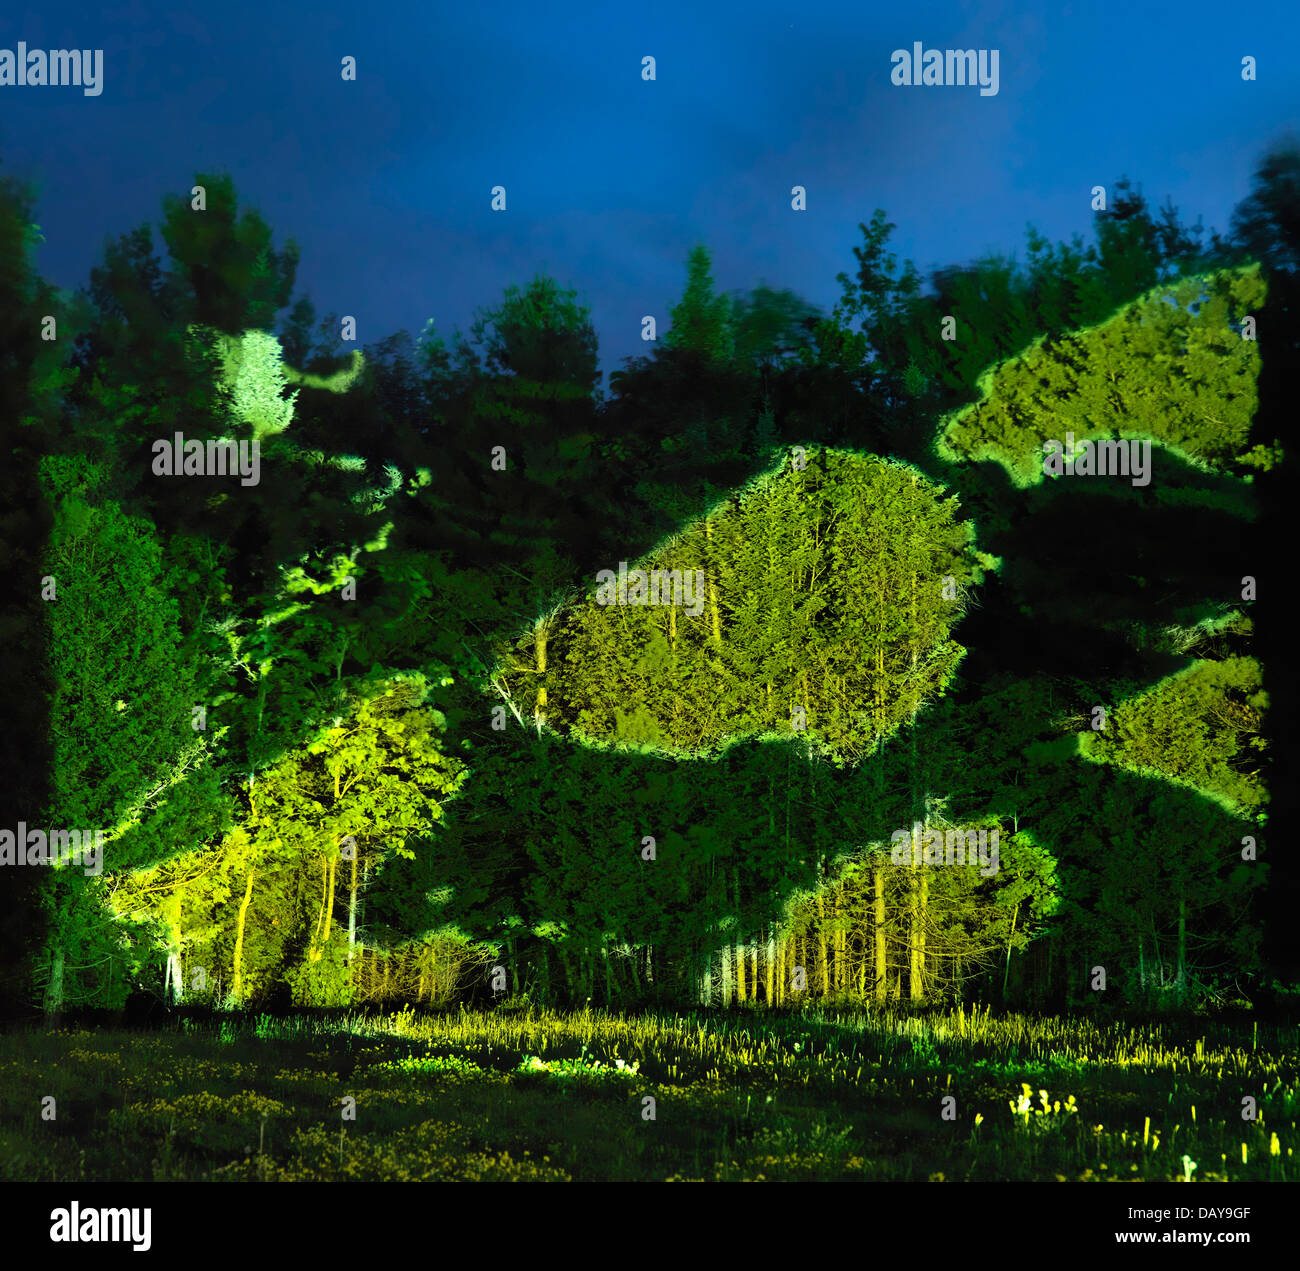 Abstract light projection on green trees and grass, beautiful abstract night nature scenery - Stock Image